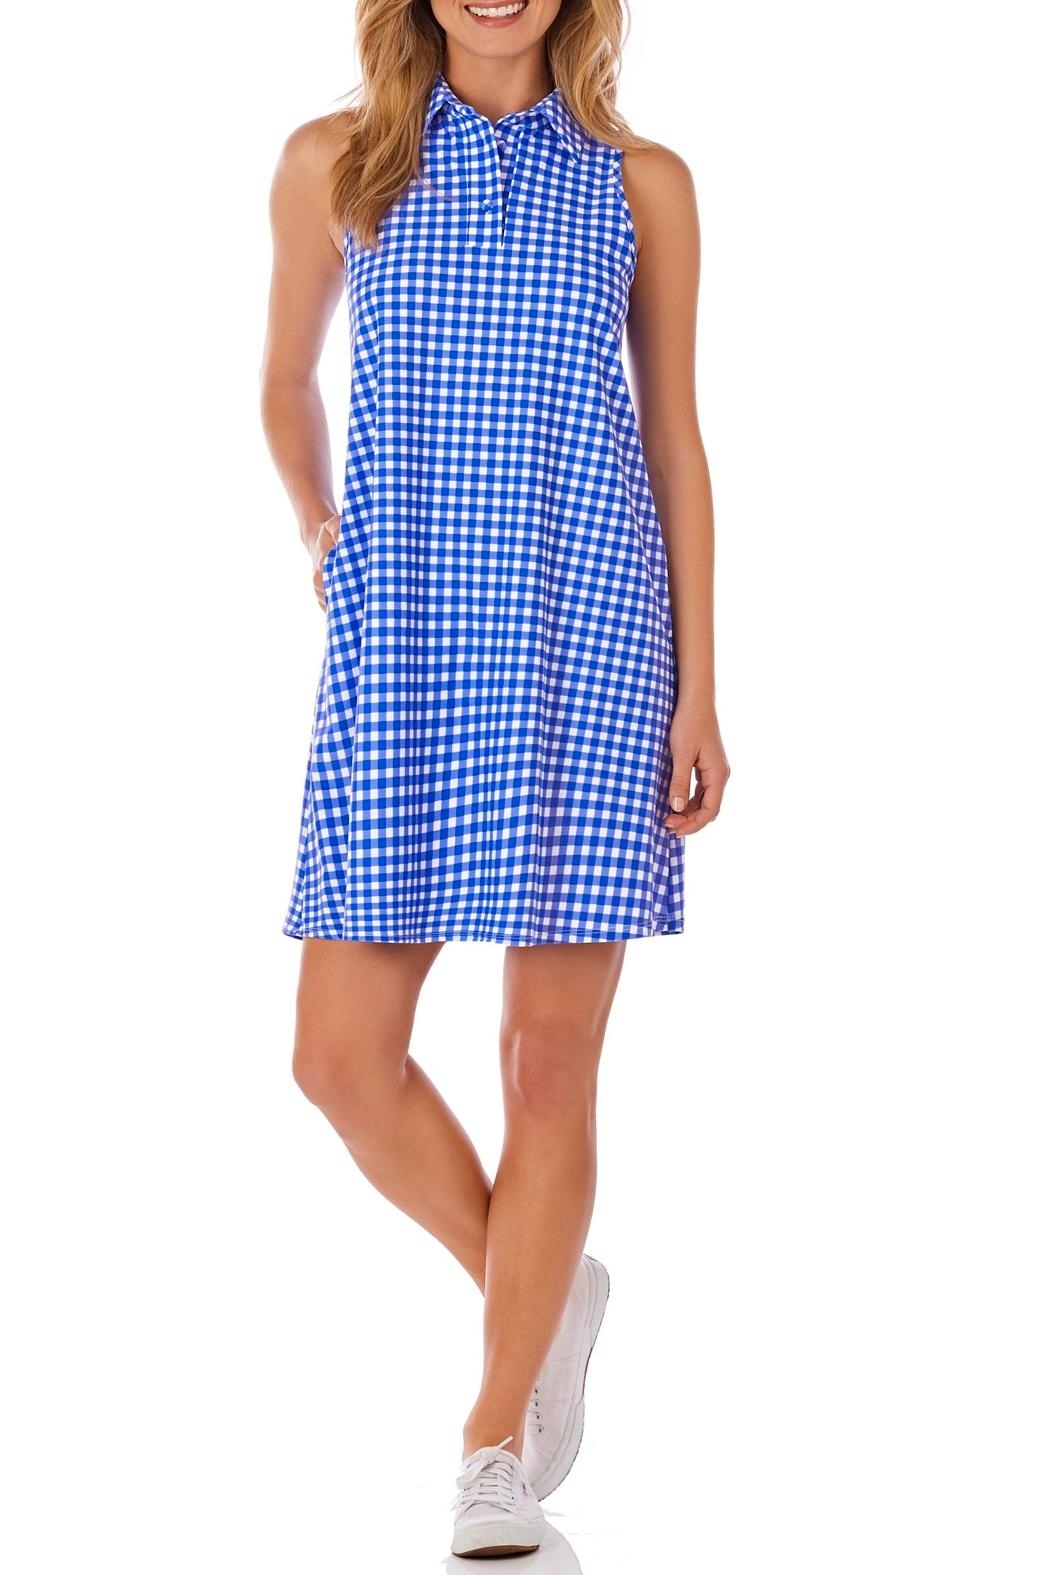 Jude Connally Harlee Swing Dress - Main Image